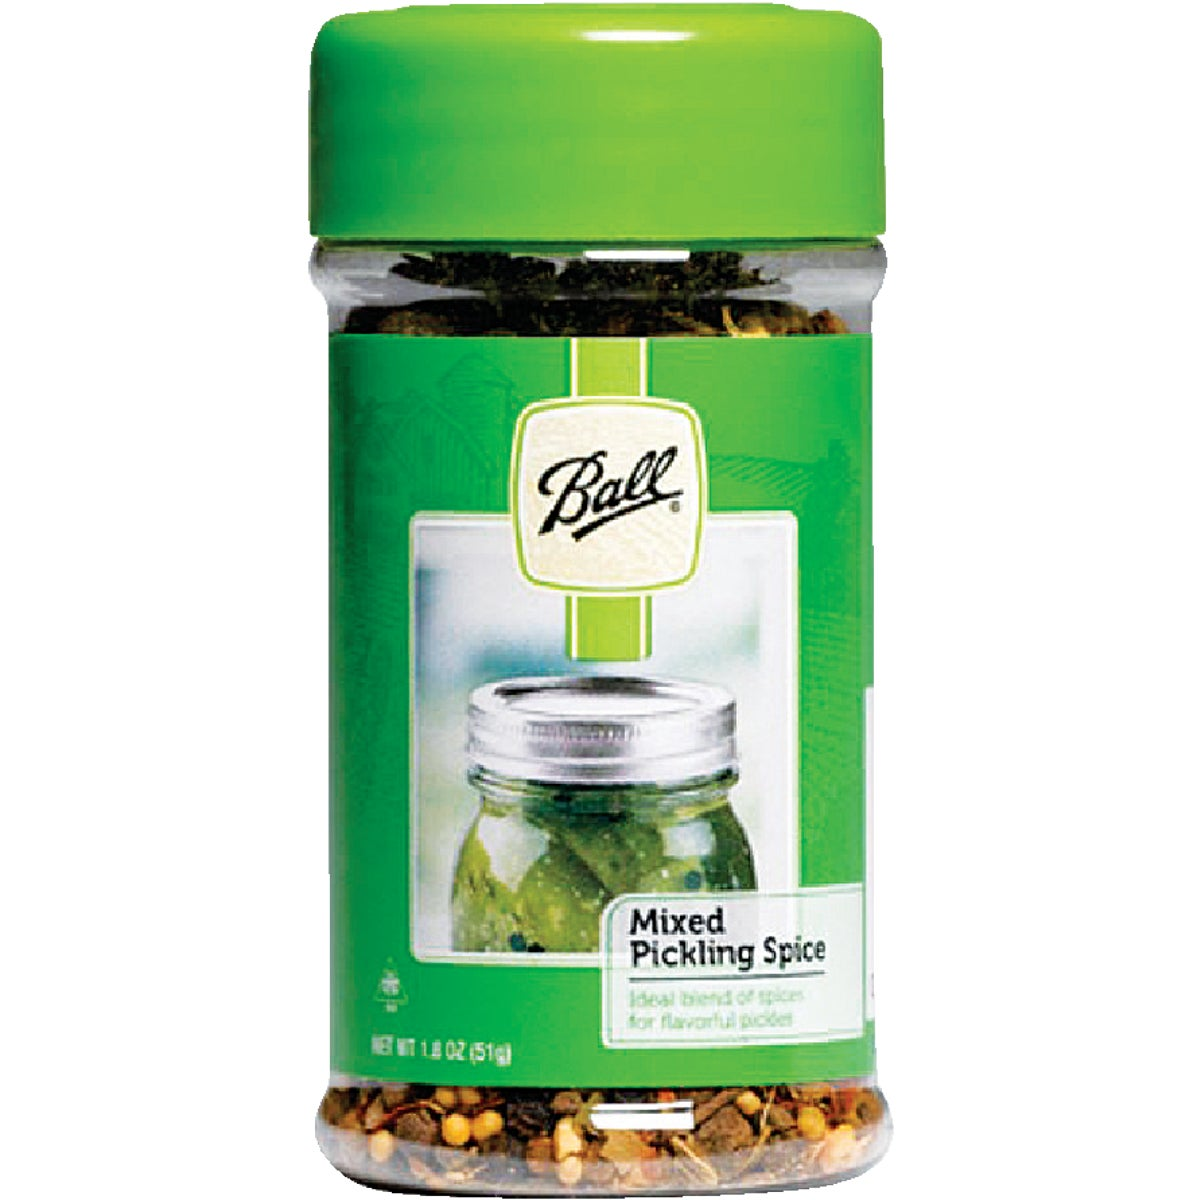 MIXED PICKLING SPICE